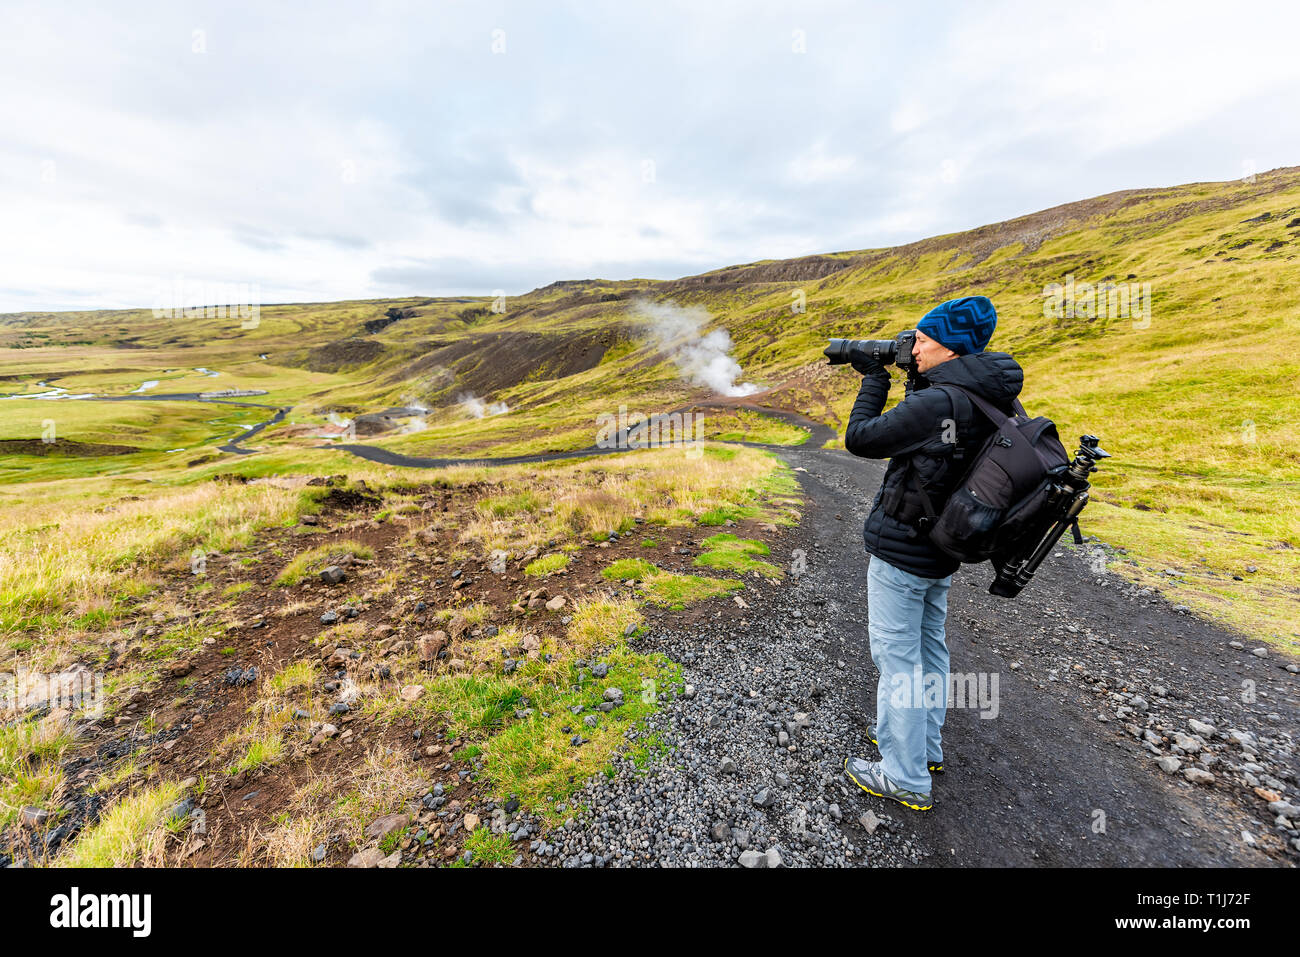 Reykjadalur, Iceland Hveragerdi Hot Springs road footpath with steam landscape morning in golden circle with man and camera tripod on hiking trail - Stock Image